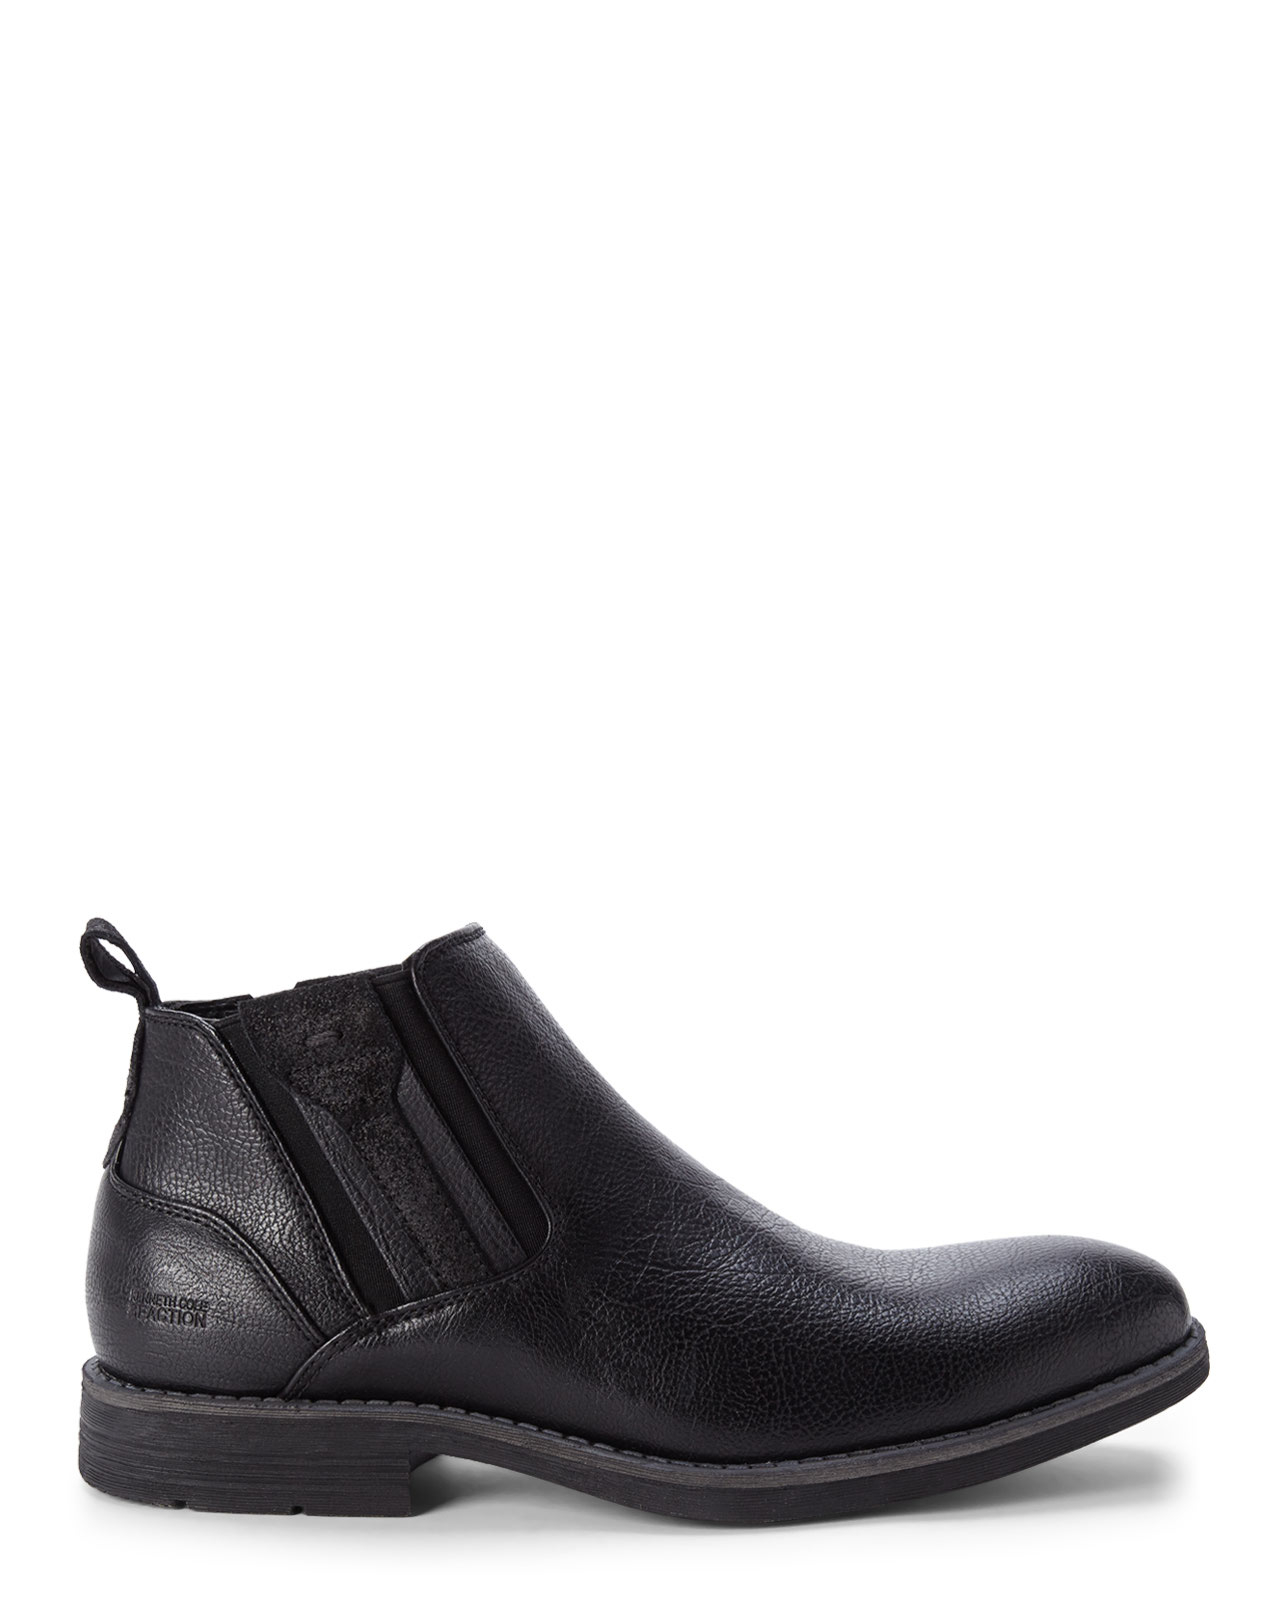 Casual Plain Toe Chelsea Boot Kenneth Cole Reaction mnGeOpPy6